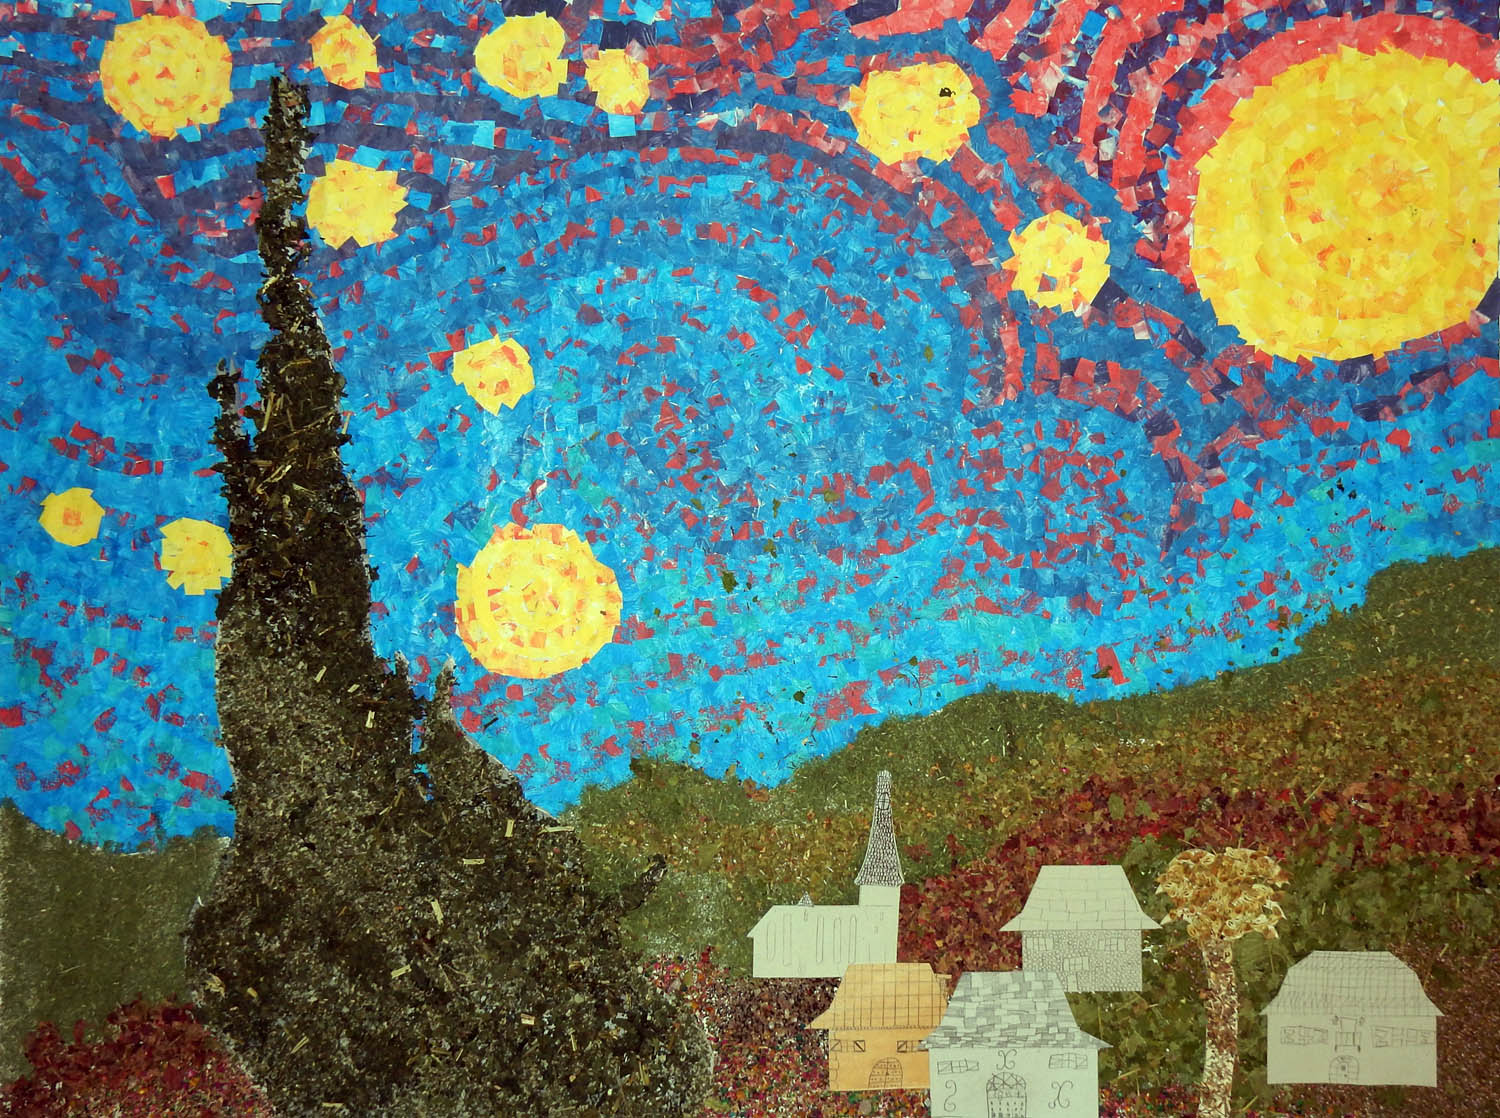 Starry night mural from france art projects for kids for Children s mural artist